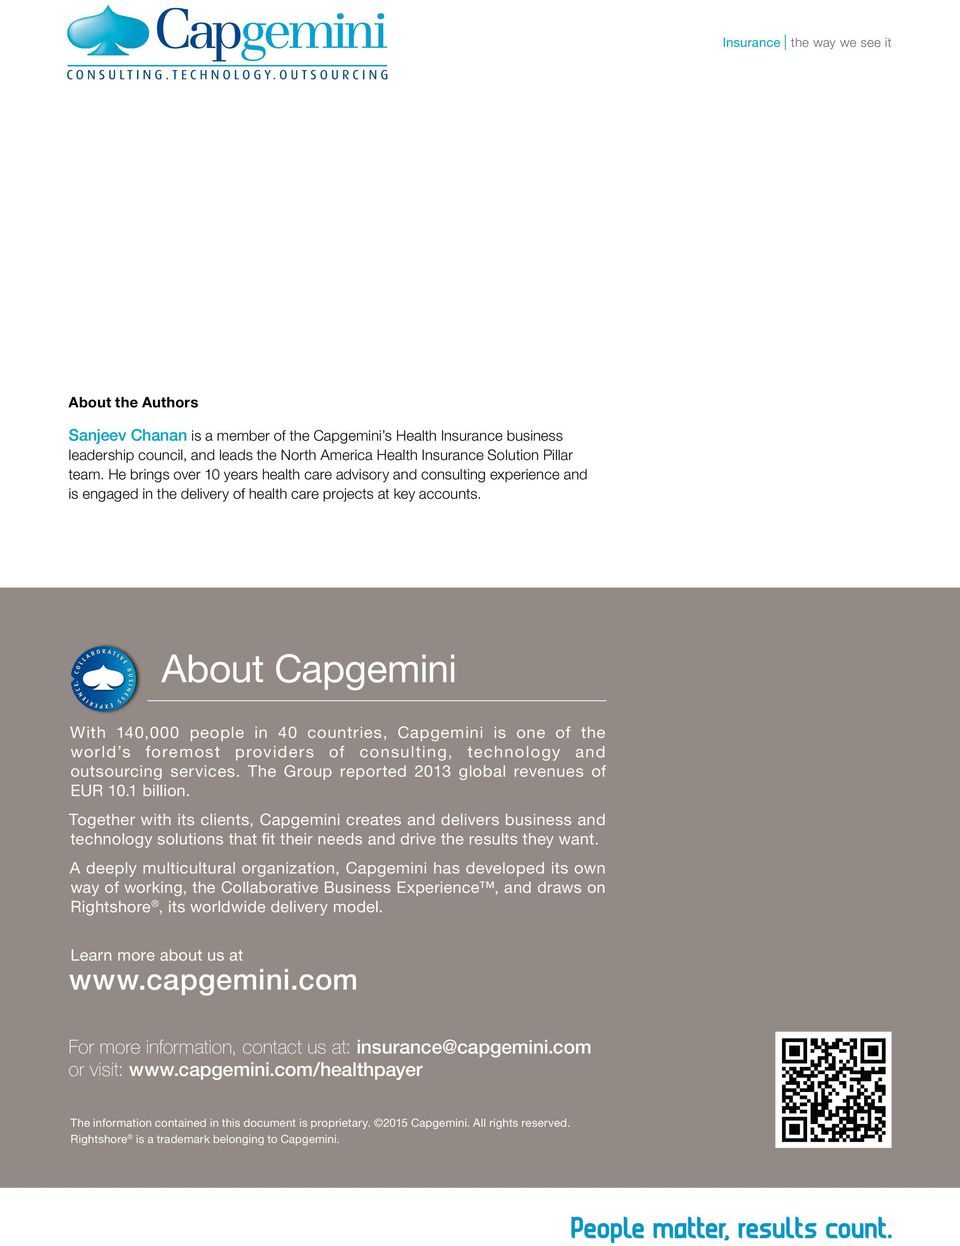 About Capgemini With 140,000 people in 40 countries, Capgemini is one of the world s foremost providers of consulting, technology and outsourcing services.